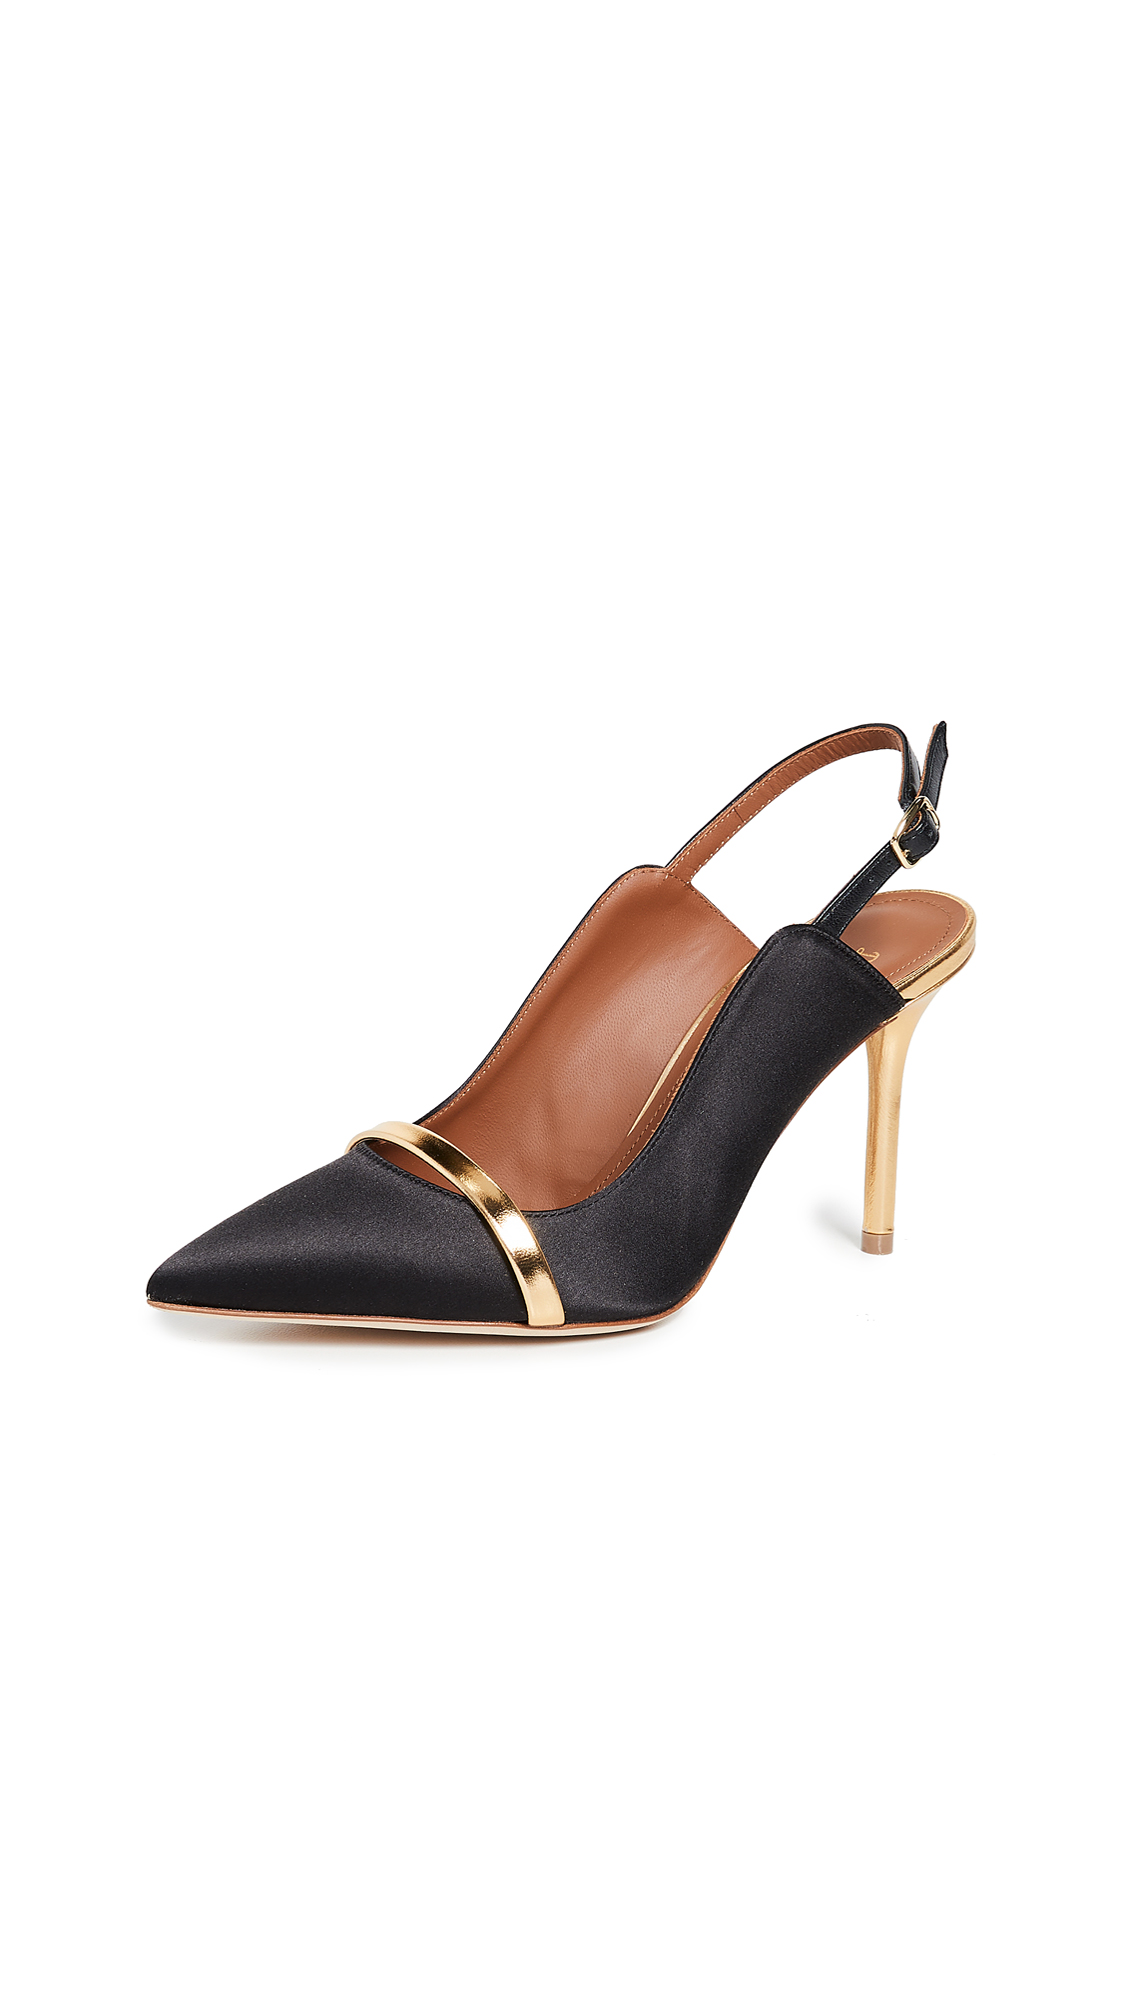 256a37752 Malone Souliers By Roy Luwolt Marion 85Mm Slingback Pumps In Black/Gold